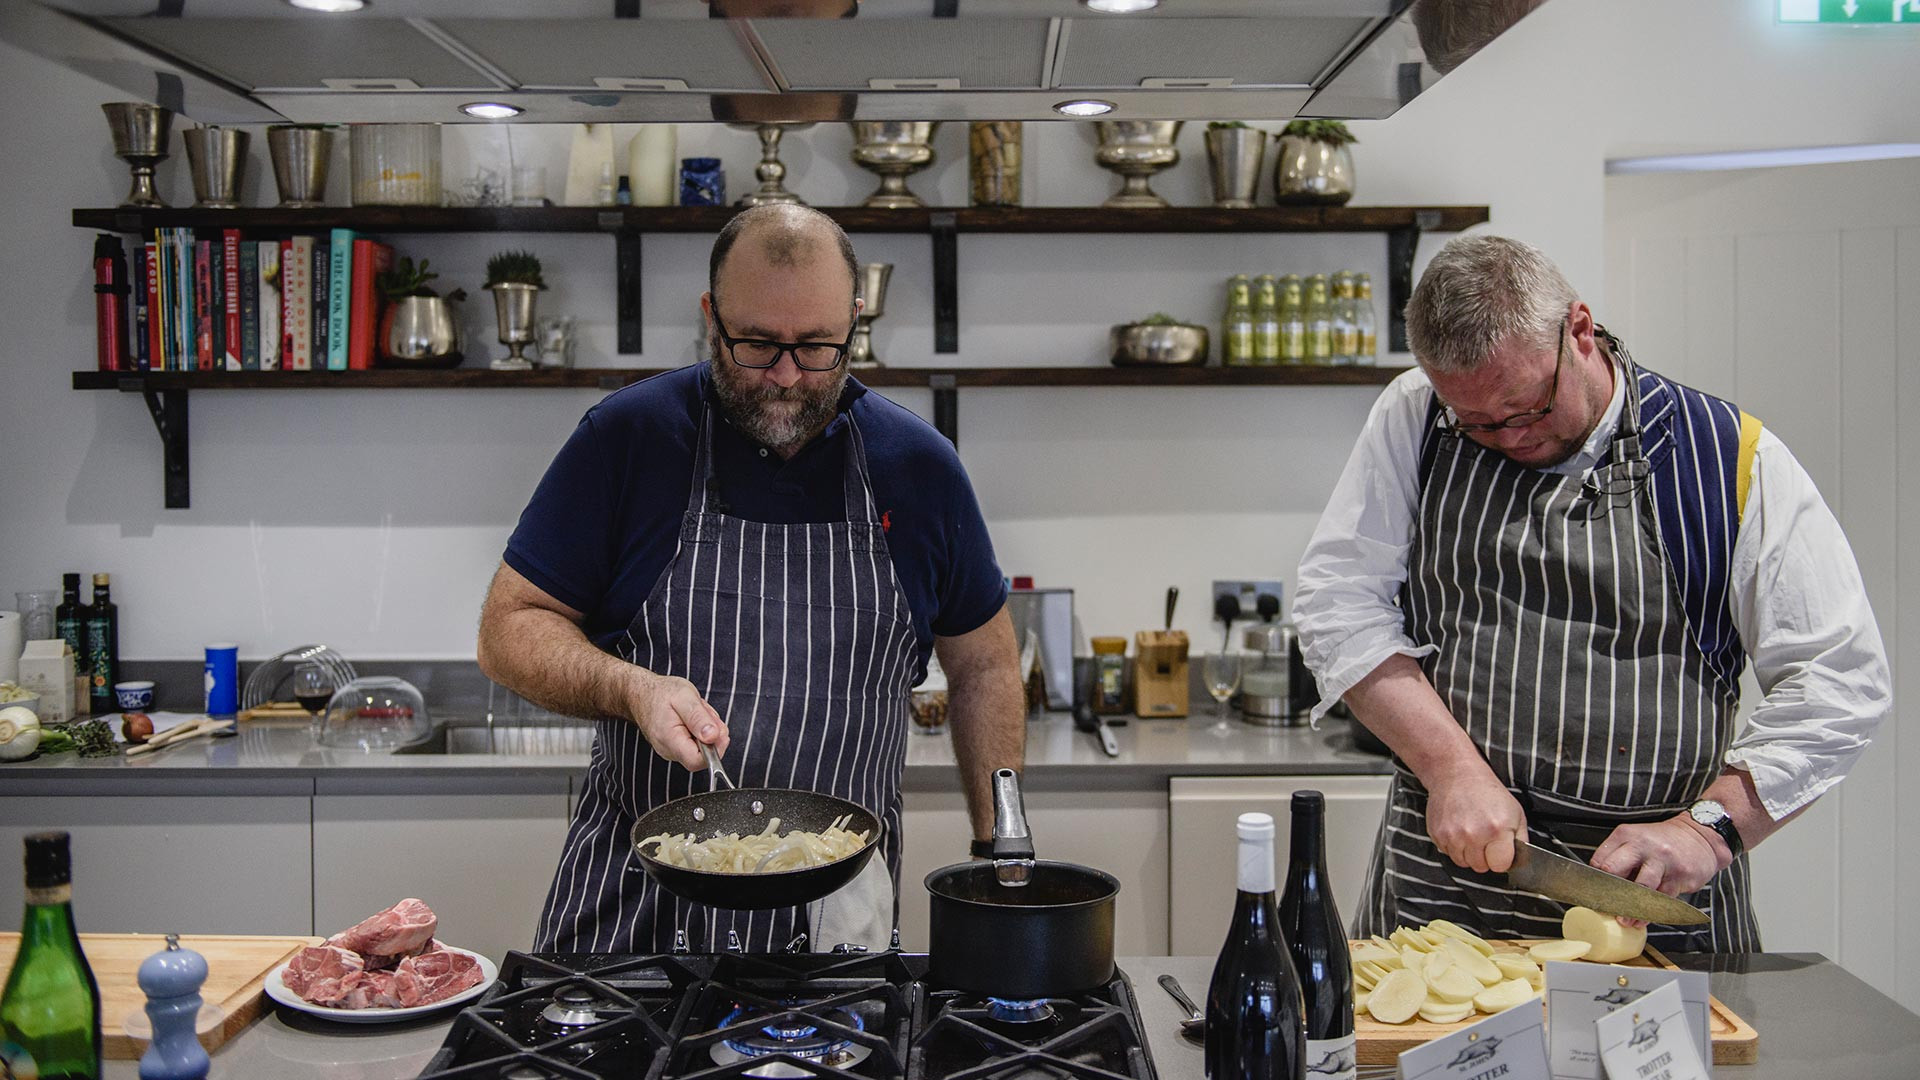 Richard H. Turner and Fergus Henderson, one half of the duo behind St John, cook up a storm in the Foodism test kitchen